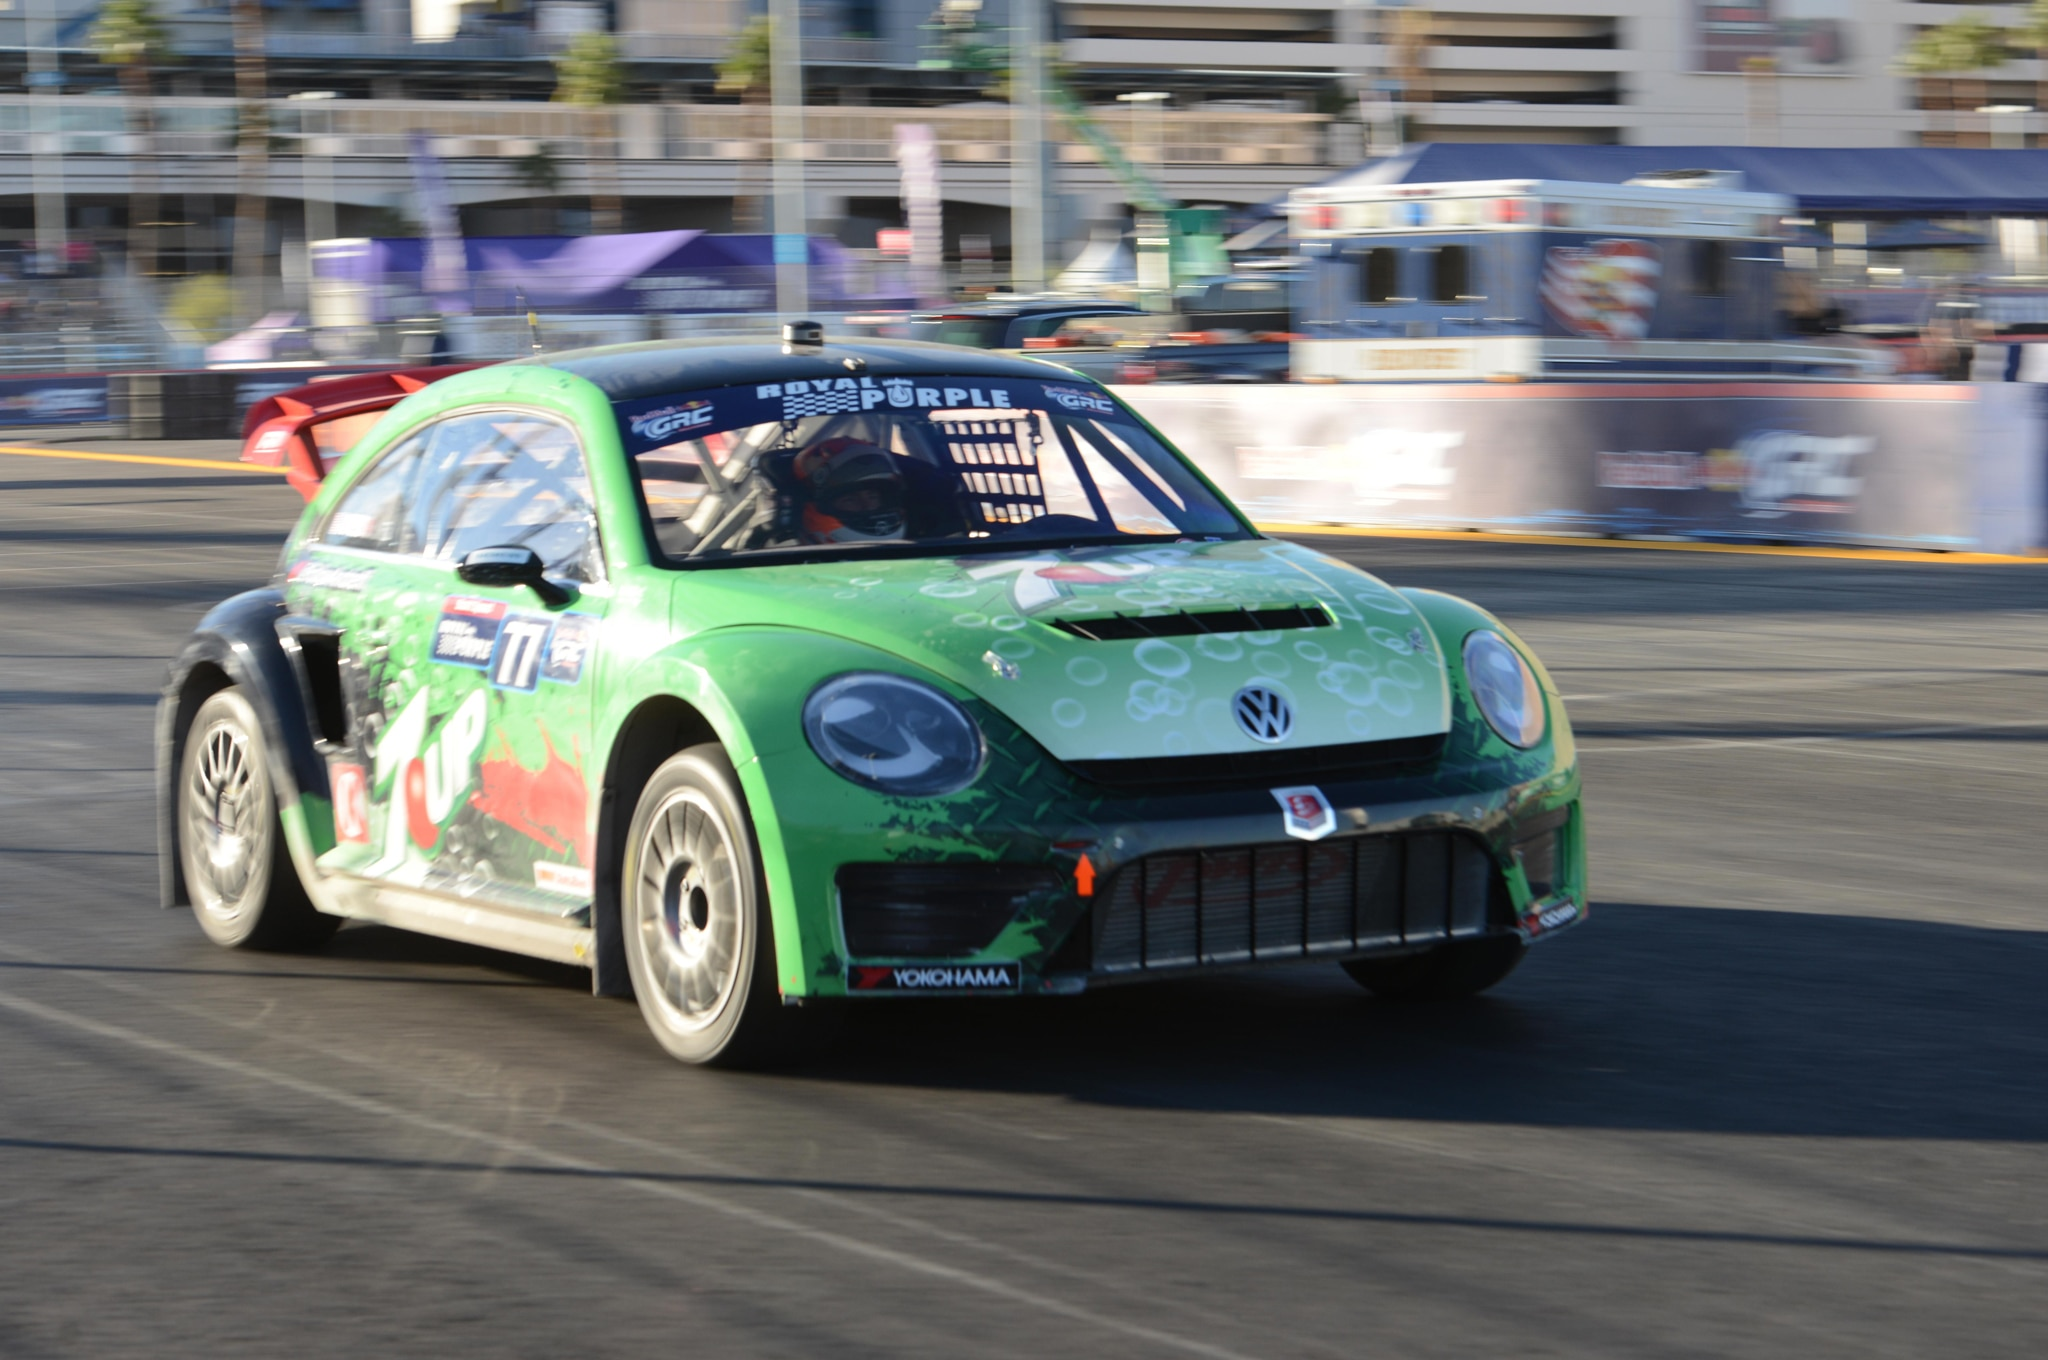 6 Things to Know About the Volkswagen Beetle Global Rallycross Cars